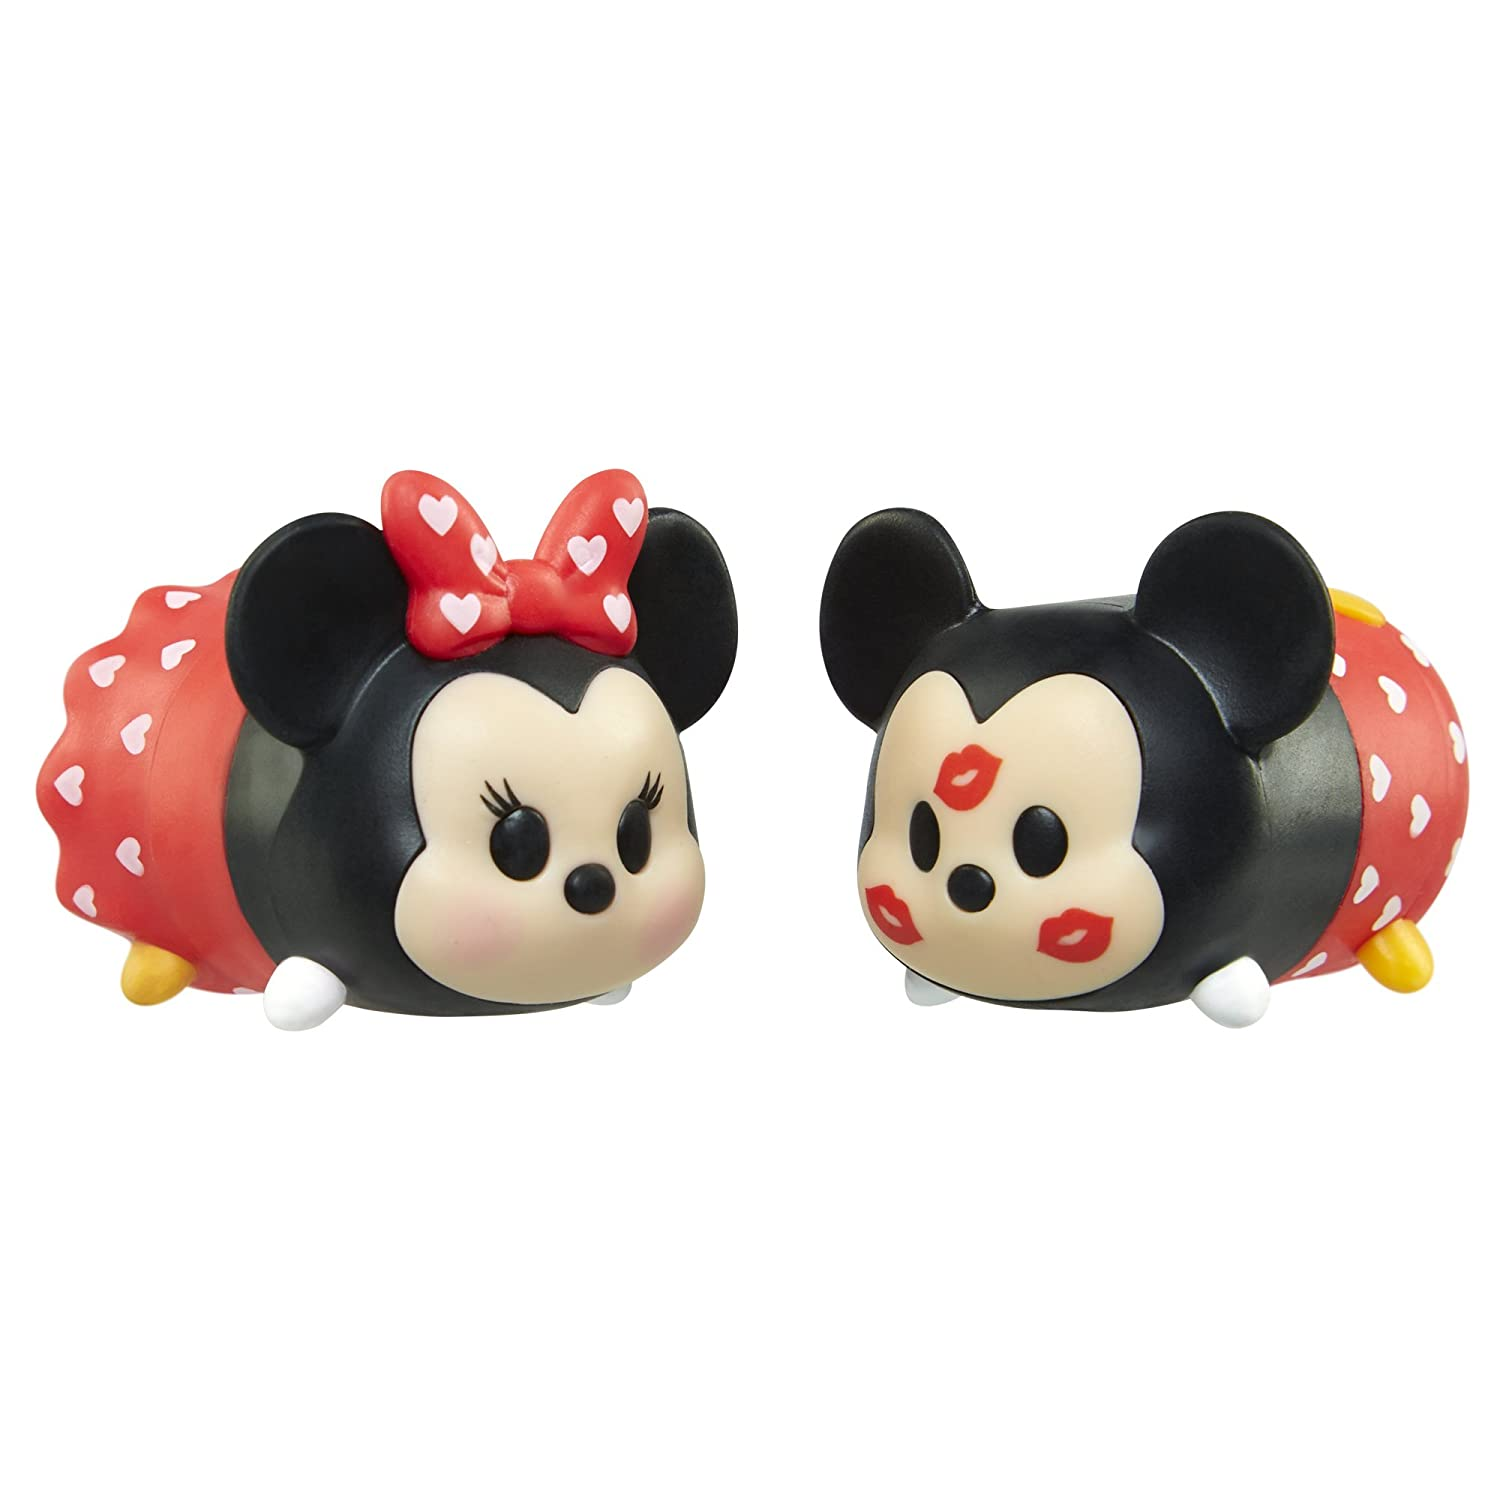 amazoncom tsum tsum valentines day mickey and minnie tsweeties gift set toys games - Mickey Mouse Valentines